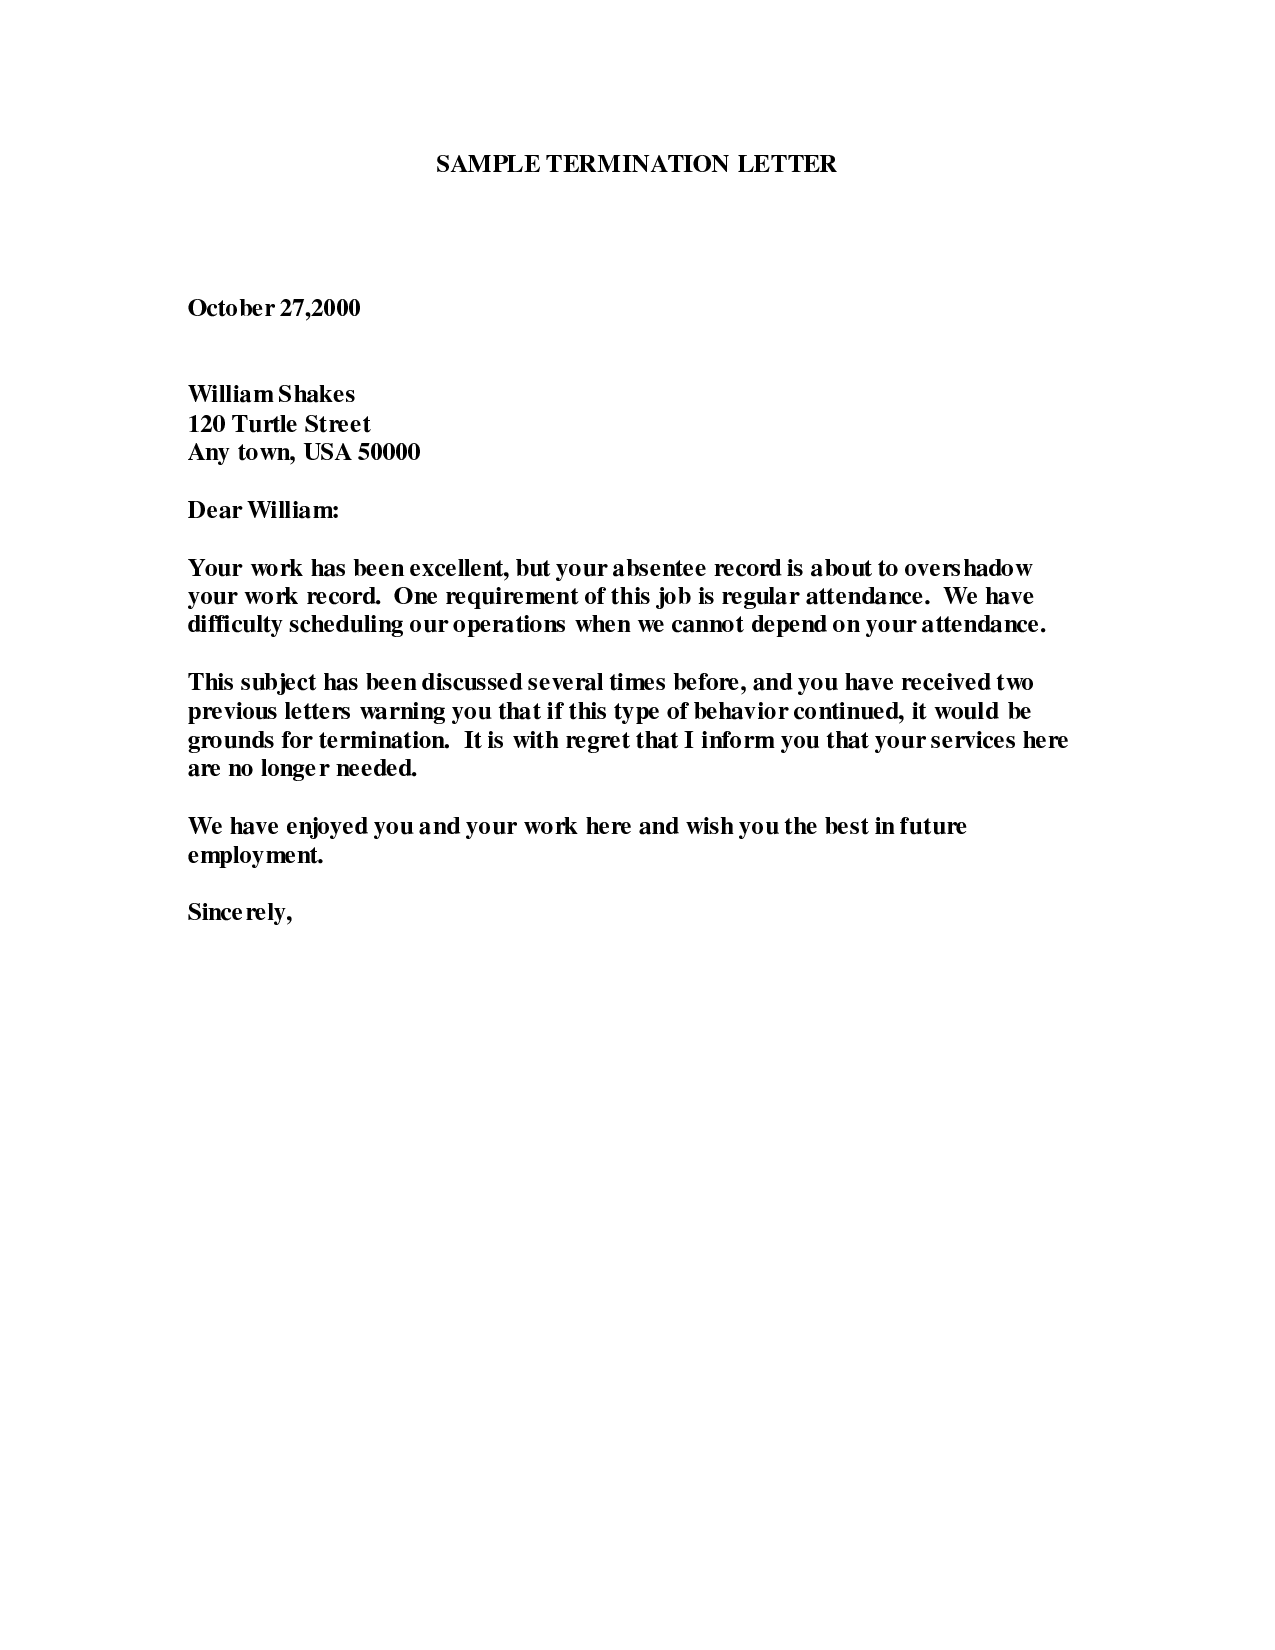 No Job Offer Letter from i.pinimg.com